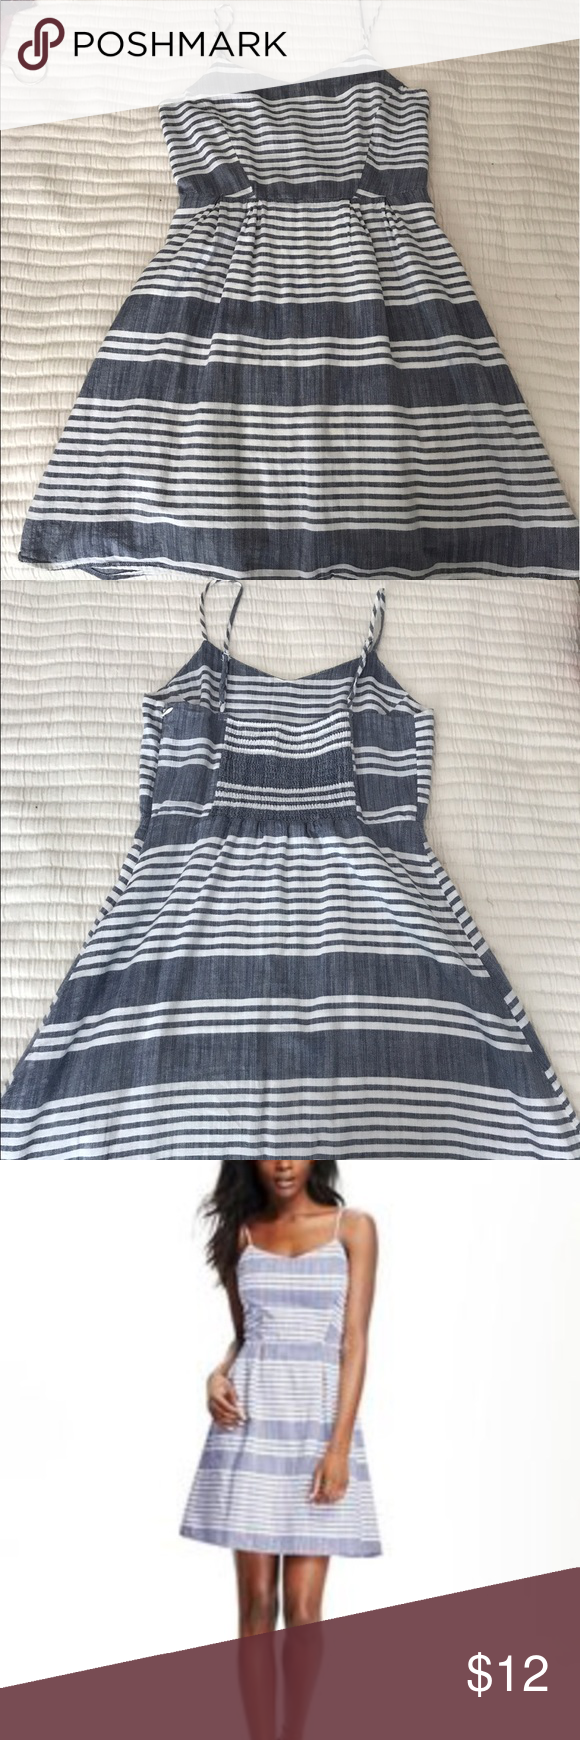 Chambray dress Old Navy chambray striped dress. Adjustable straps. Excellent condition! Old Navy Dresses